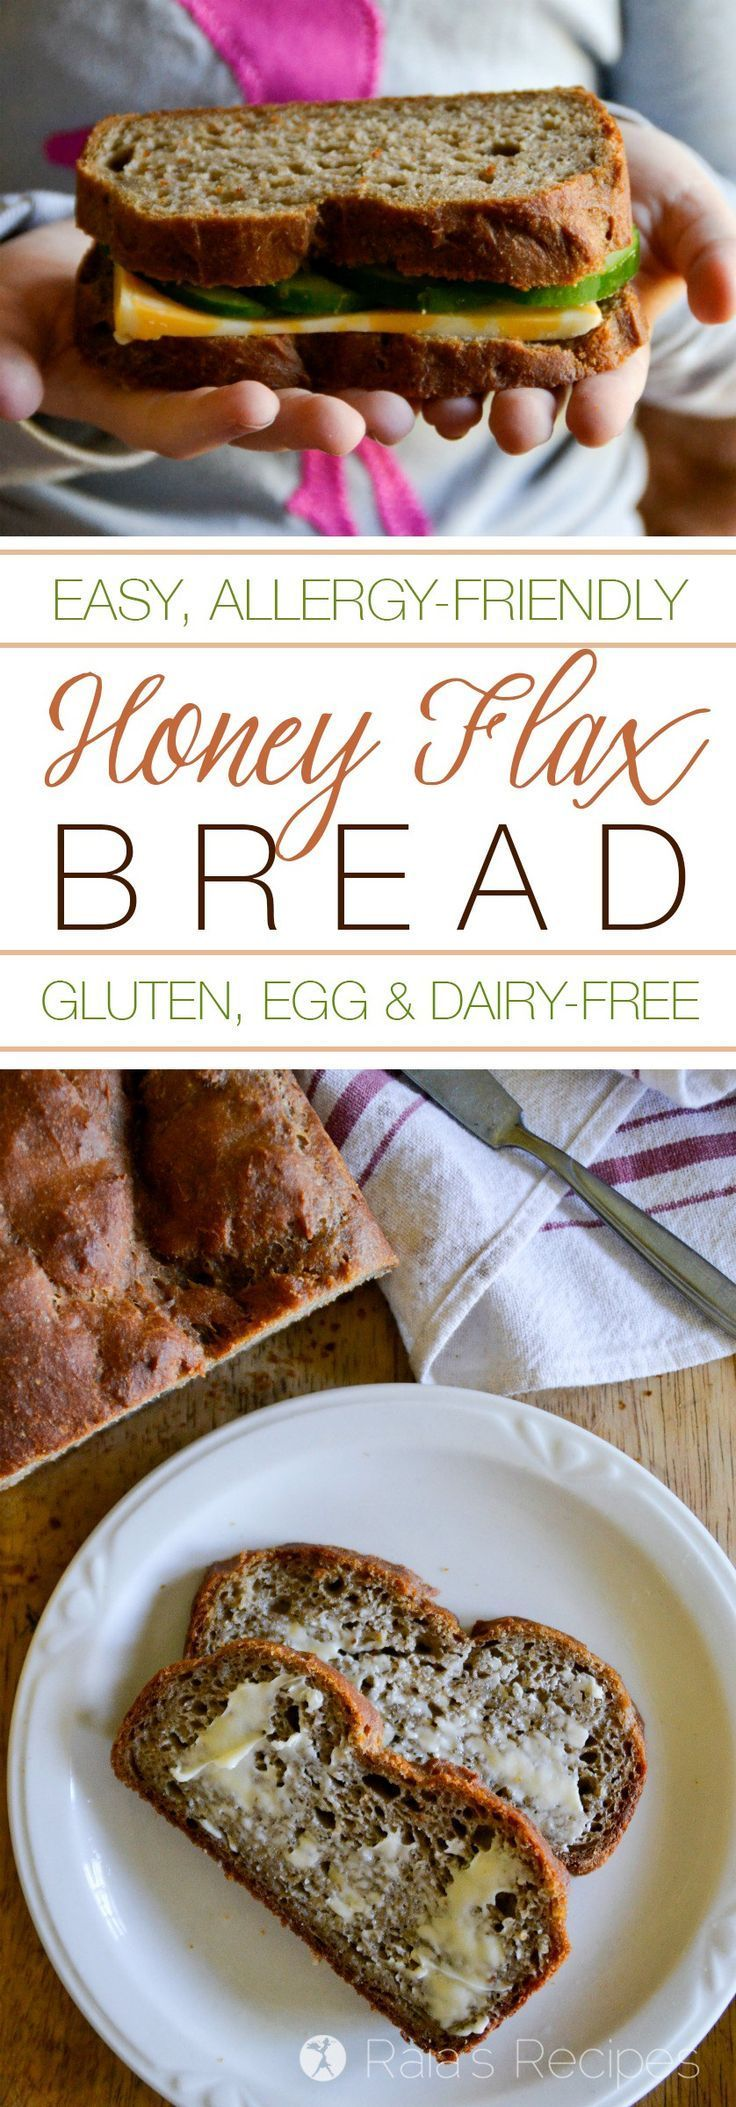 """This gluten, egg, and dairy-free Honey Flax Bread has a great texture and a light flavor. My hubby even likes it more than """"regular"""" bread!   RaiasRecipes.com"""